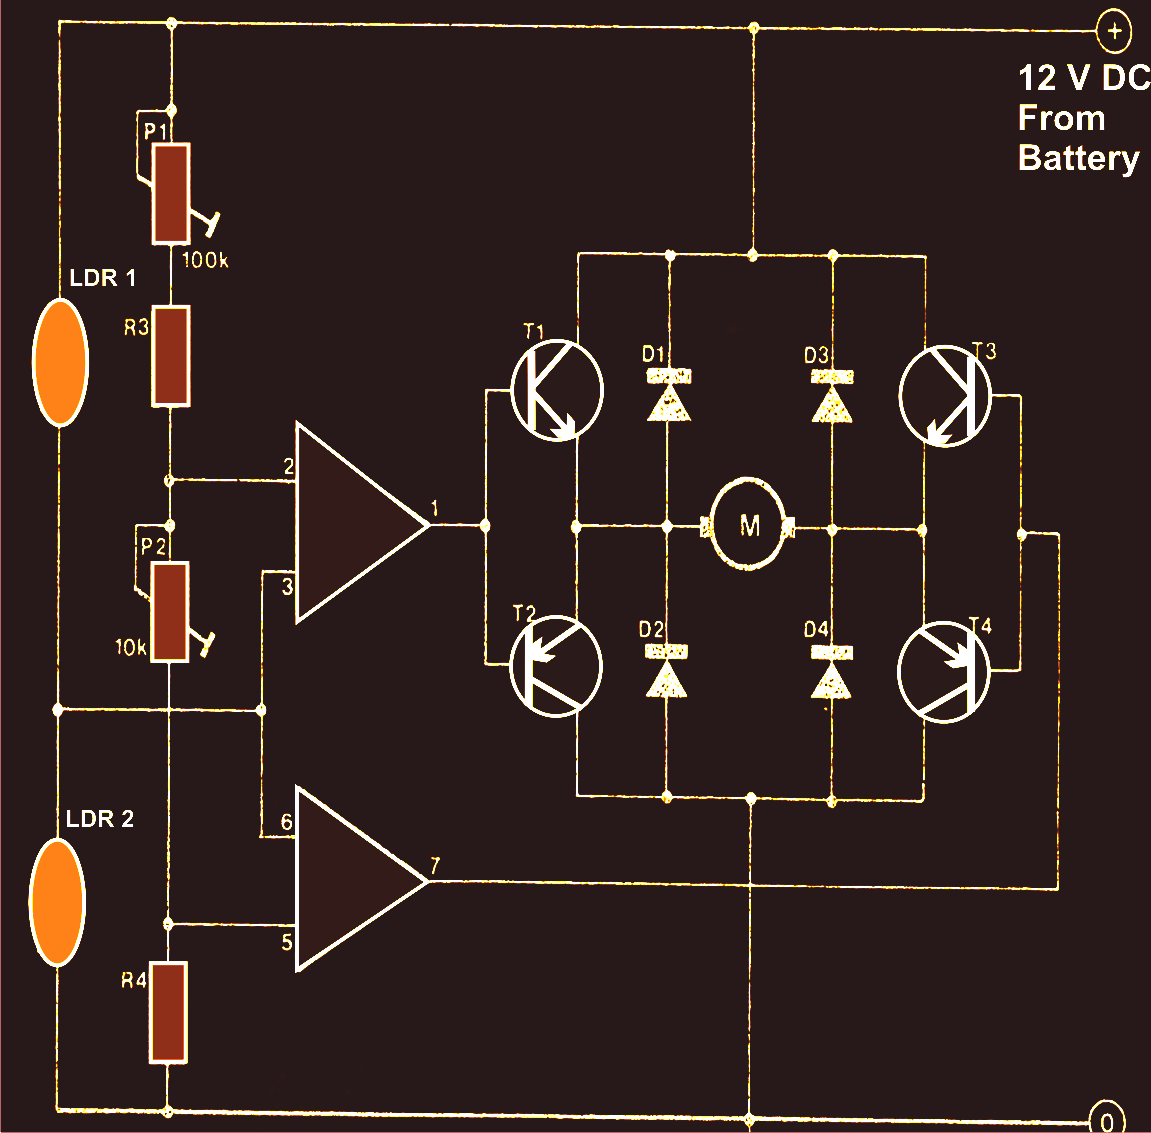 Solar Tracker Circuit Diagram Simple Ldr System Mechanism And Control Explained